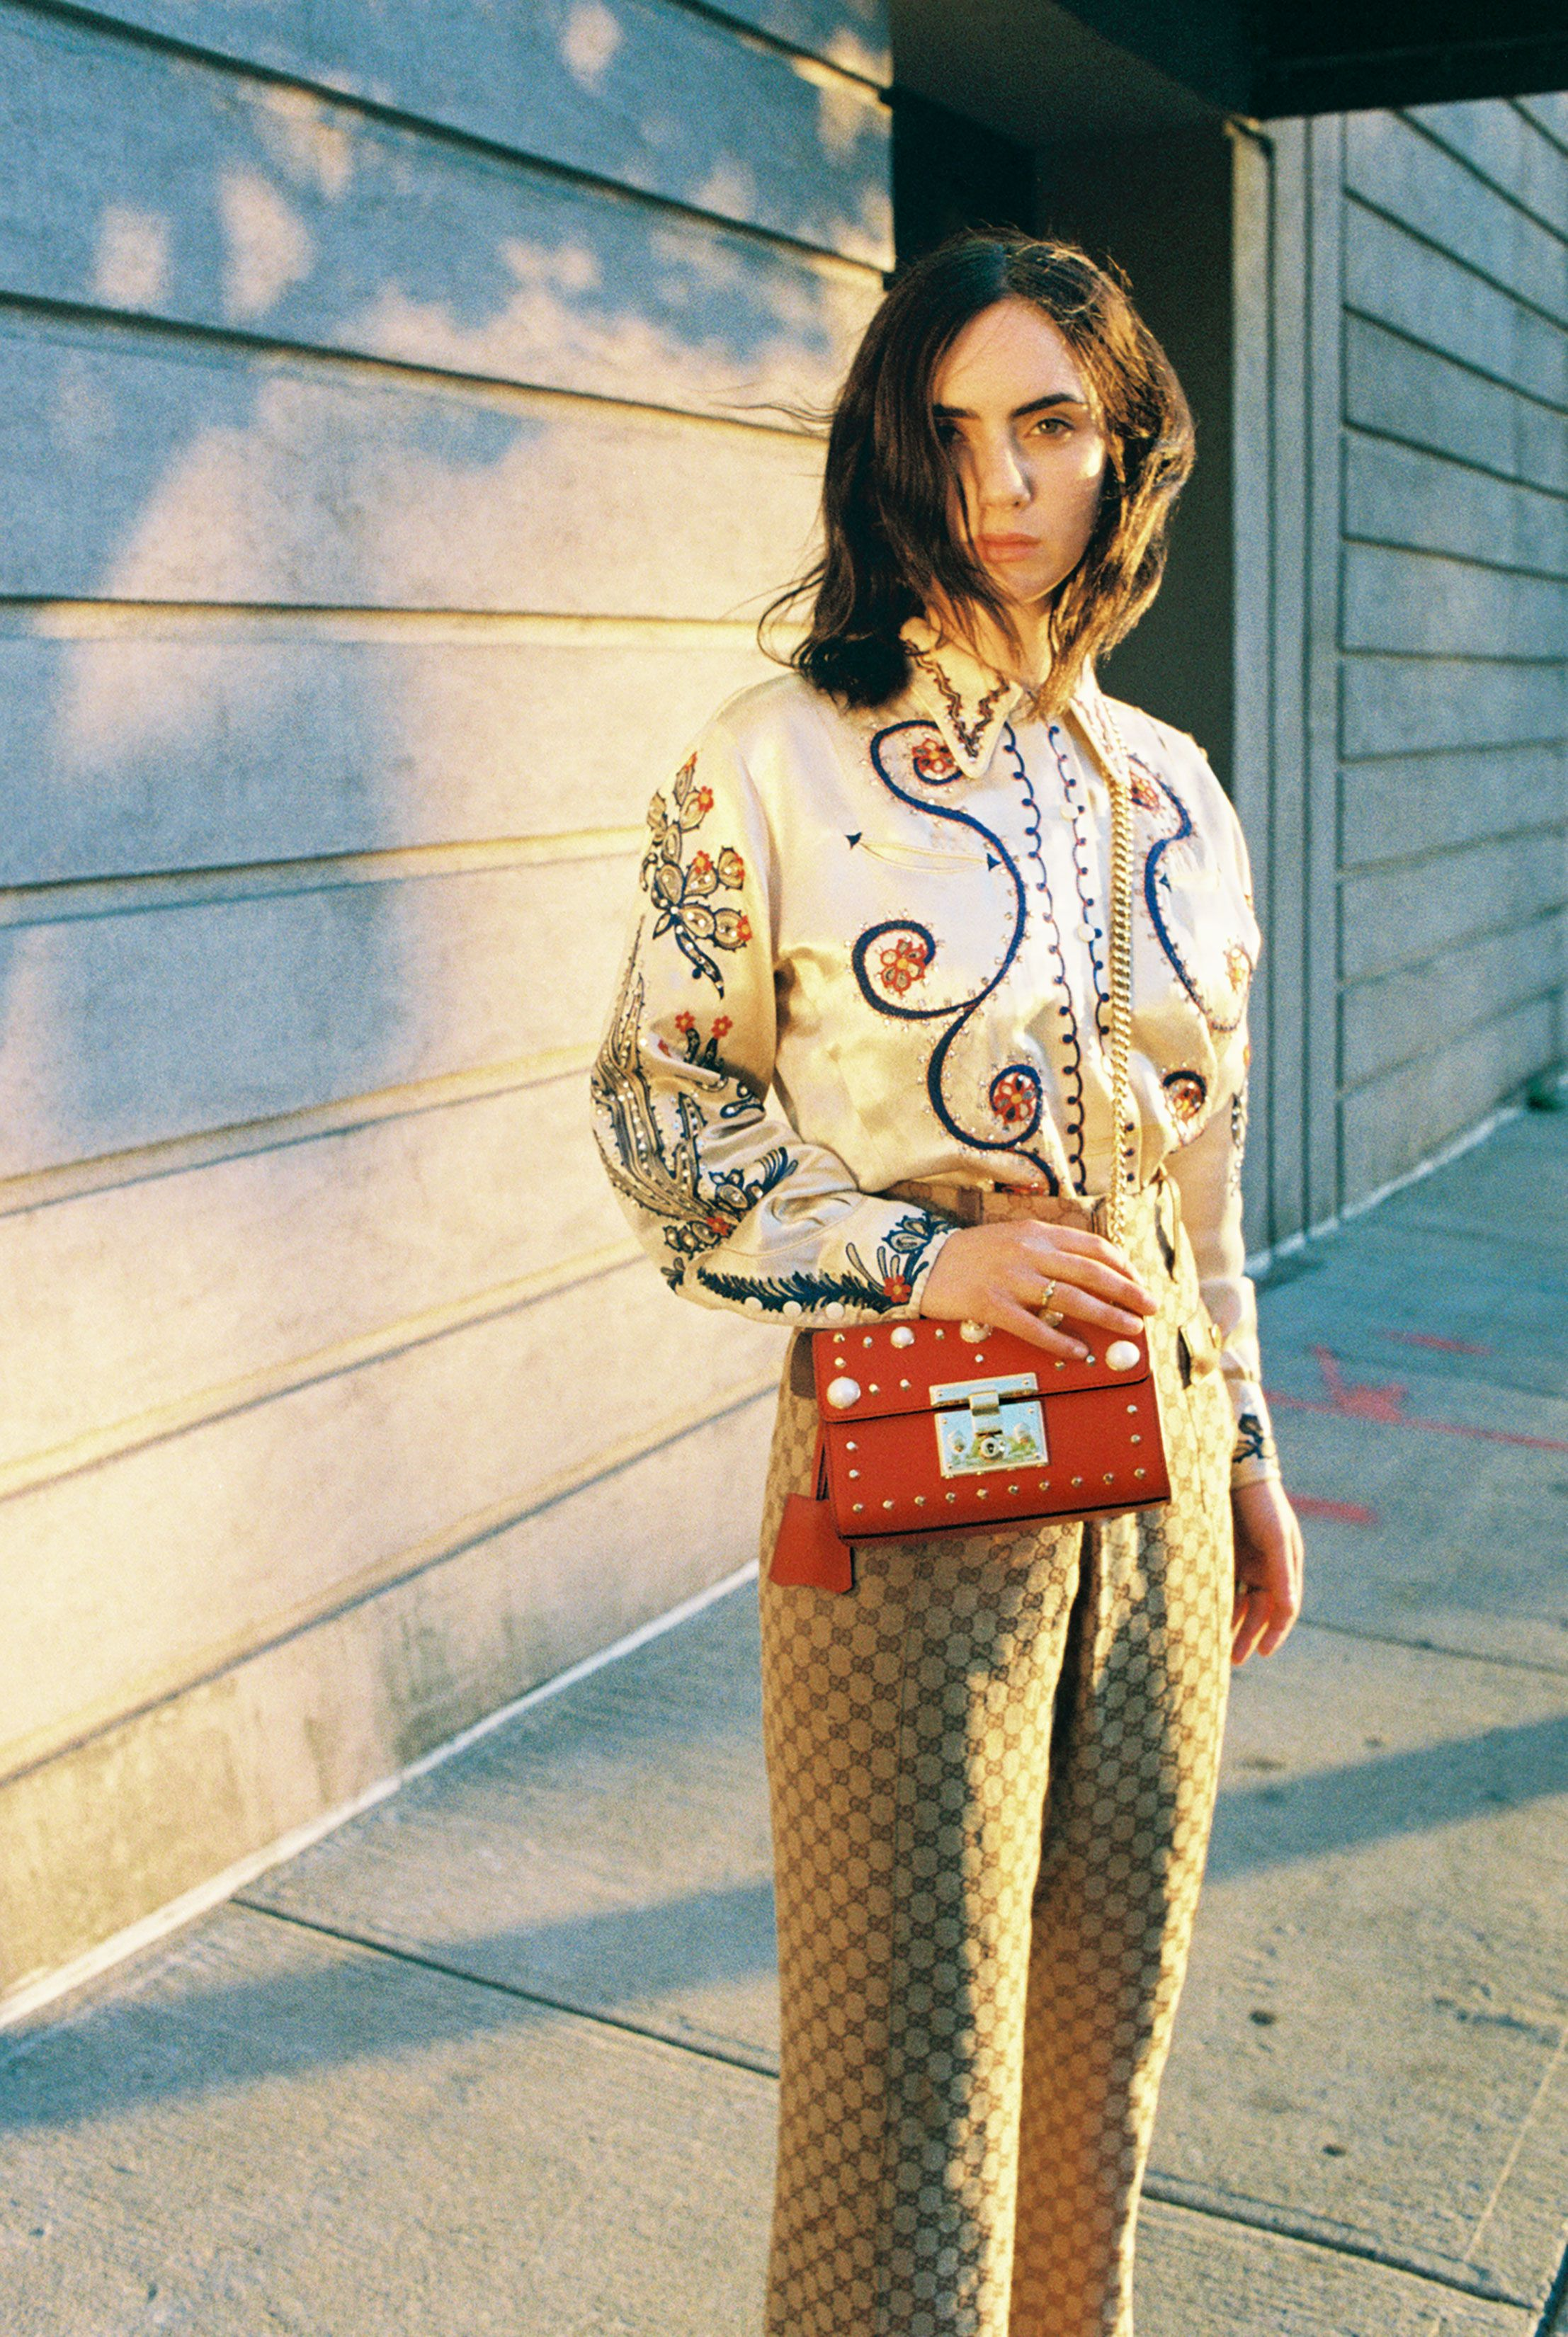 e65cbf3c34d Zoe Bleu Sidel, 21, in her own vintage shirt, vintage Gucci trousers and  Padlock bag with pearls and studs. Produced by Vogue for Gucci.